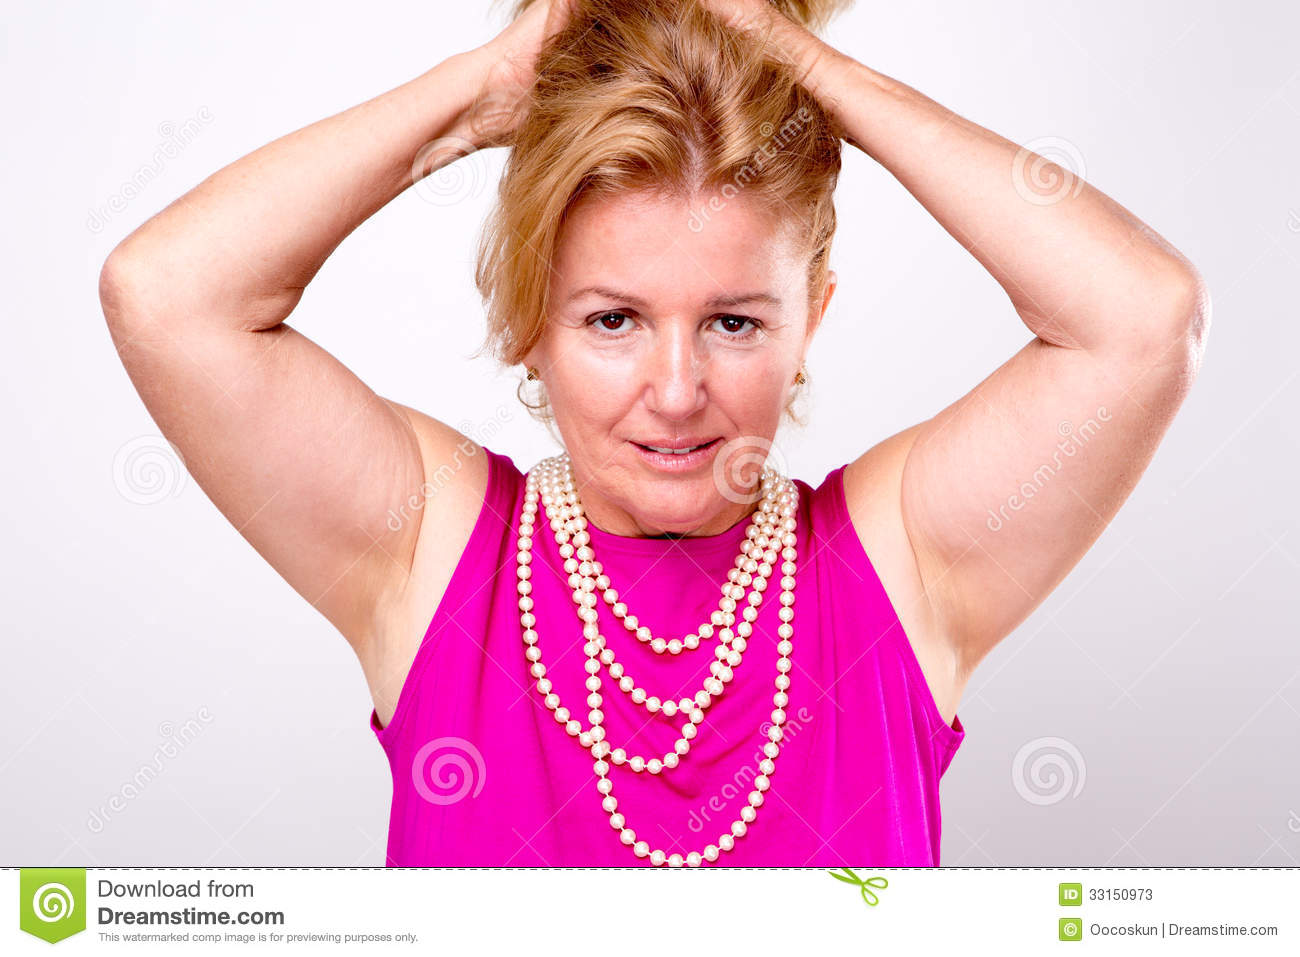 Mature Blonde Lady With Both Arms Up Stock Photos - Image 33150973-6761